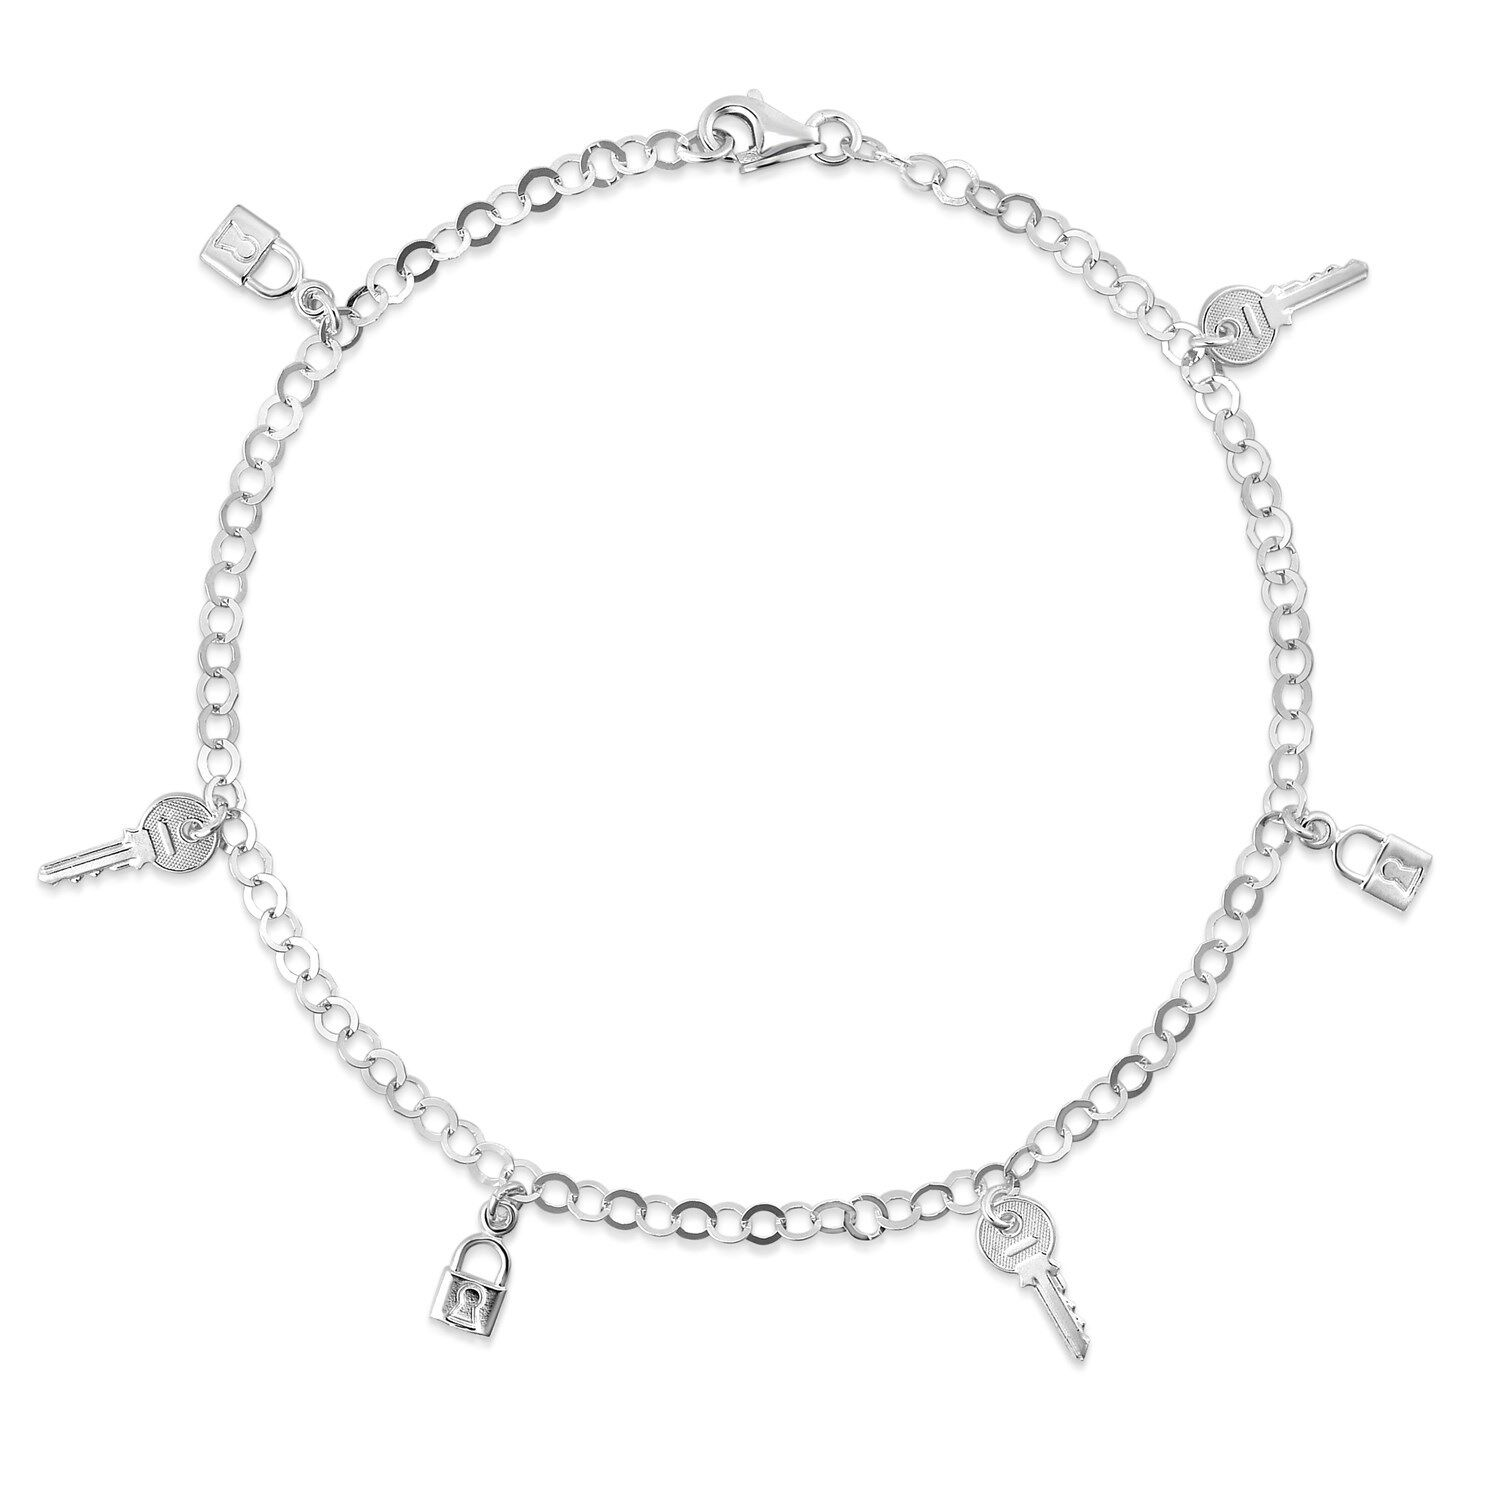 key jewellery fullxfull unicorn zoom anklet bracelet ankle listing body il